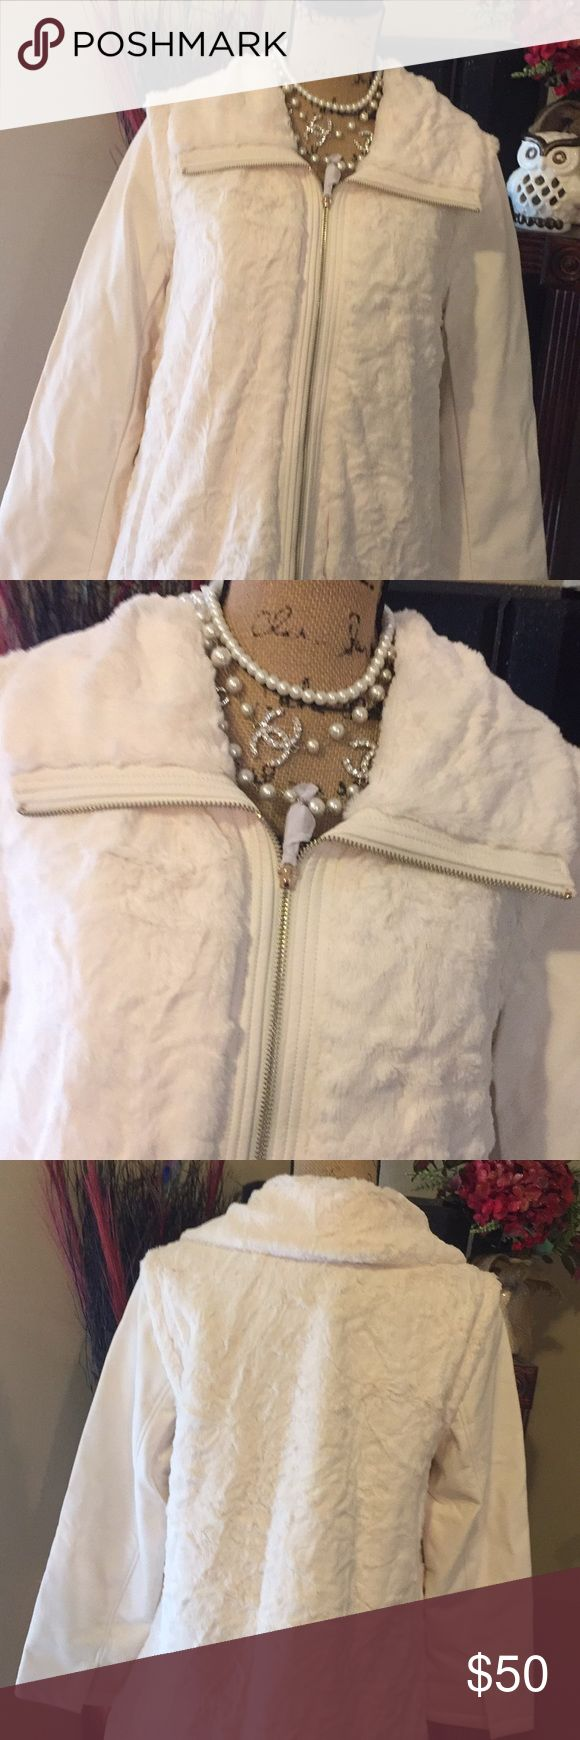 NWT COAT OR VEST💋CHANEL NECKLACE NOT INCLUDED# NWT BEAUTIFUL, Fake fur and soft leather! The sleeves,will unzip inside to change your whole look to a casual vest! 2 LOOKS IN 1🙀NWT, QVC dennis by dennis basco QVC Jackets & Coats Vests